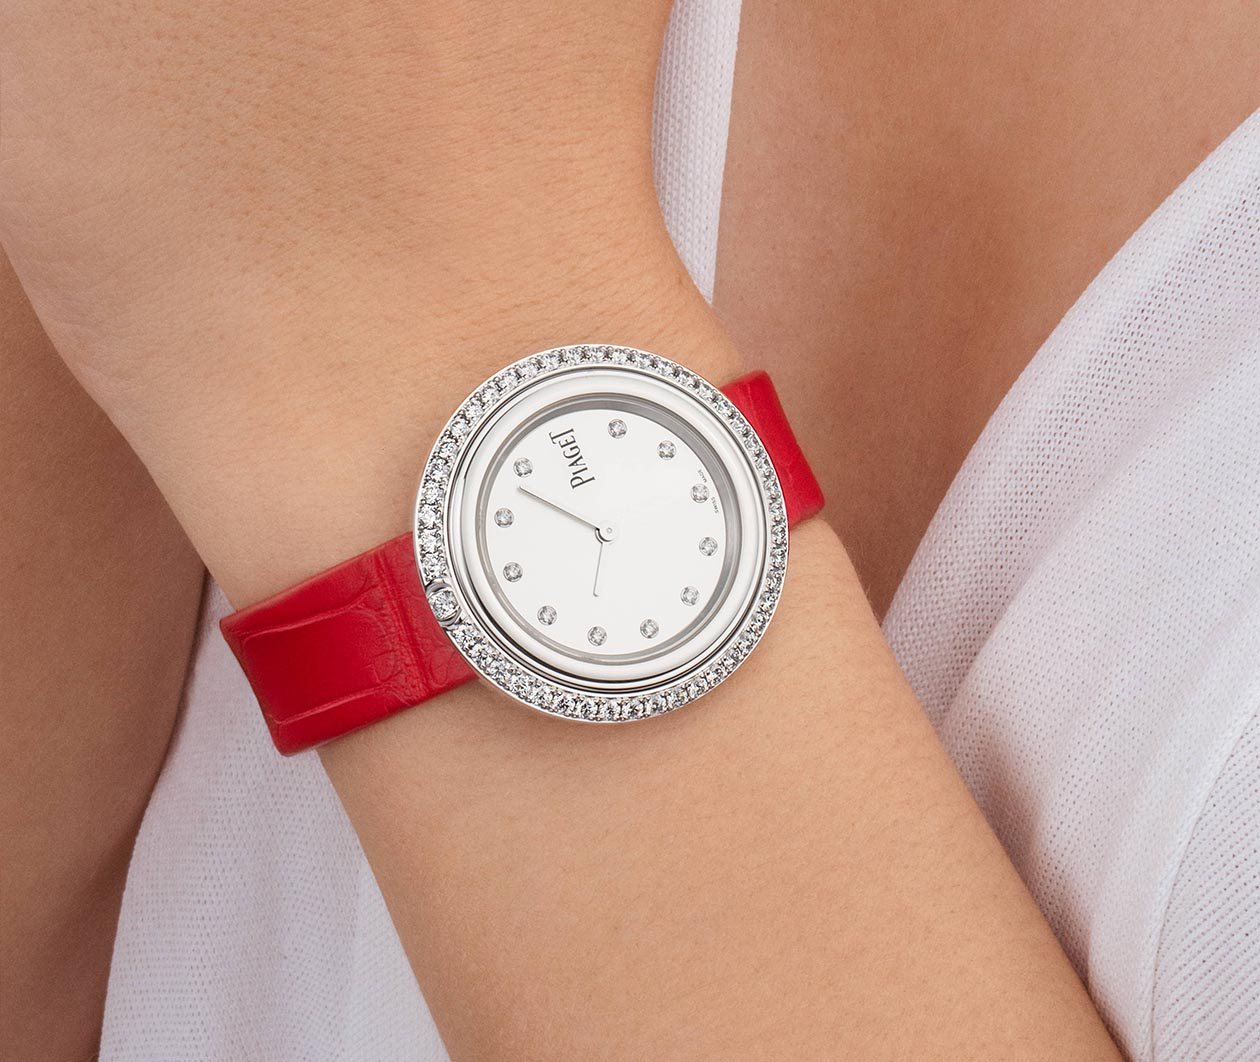 Piaget Possession watch G0A43094 Carousel 2 FINAL